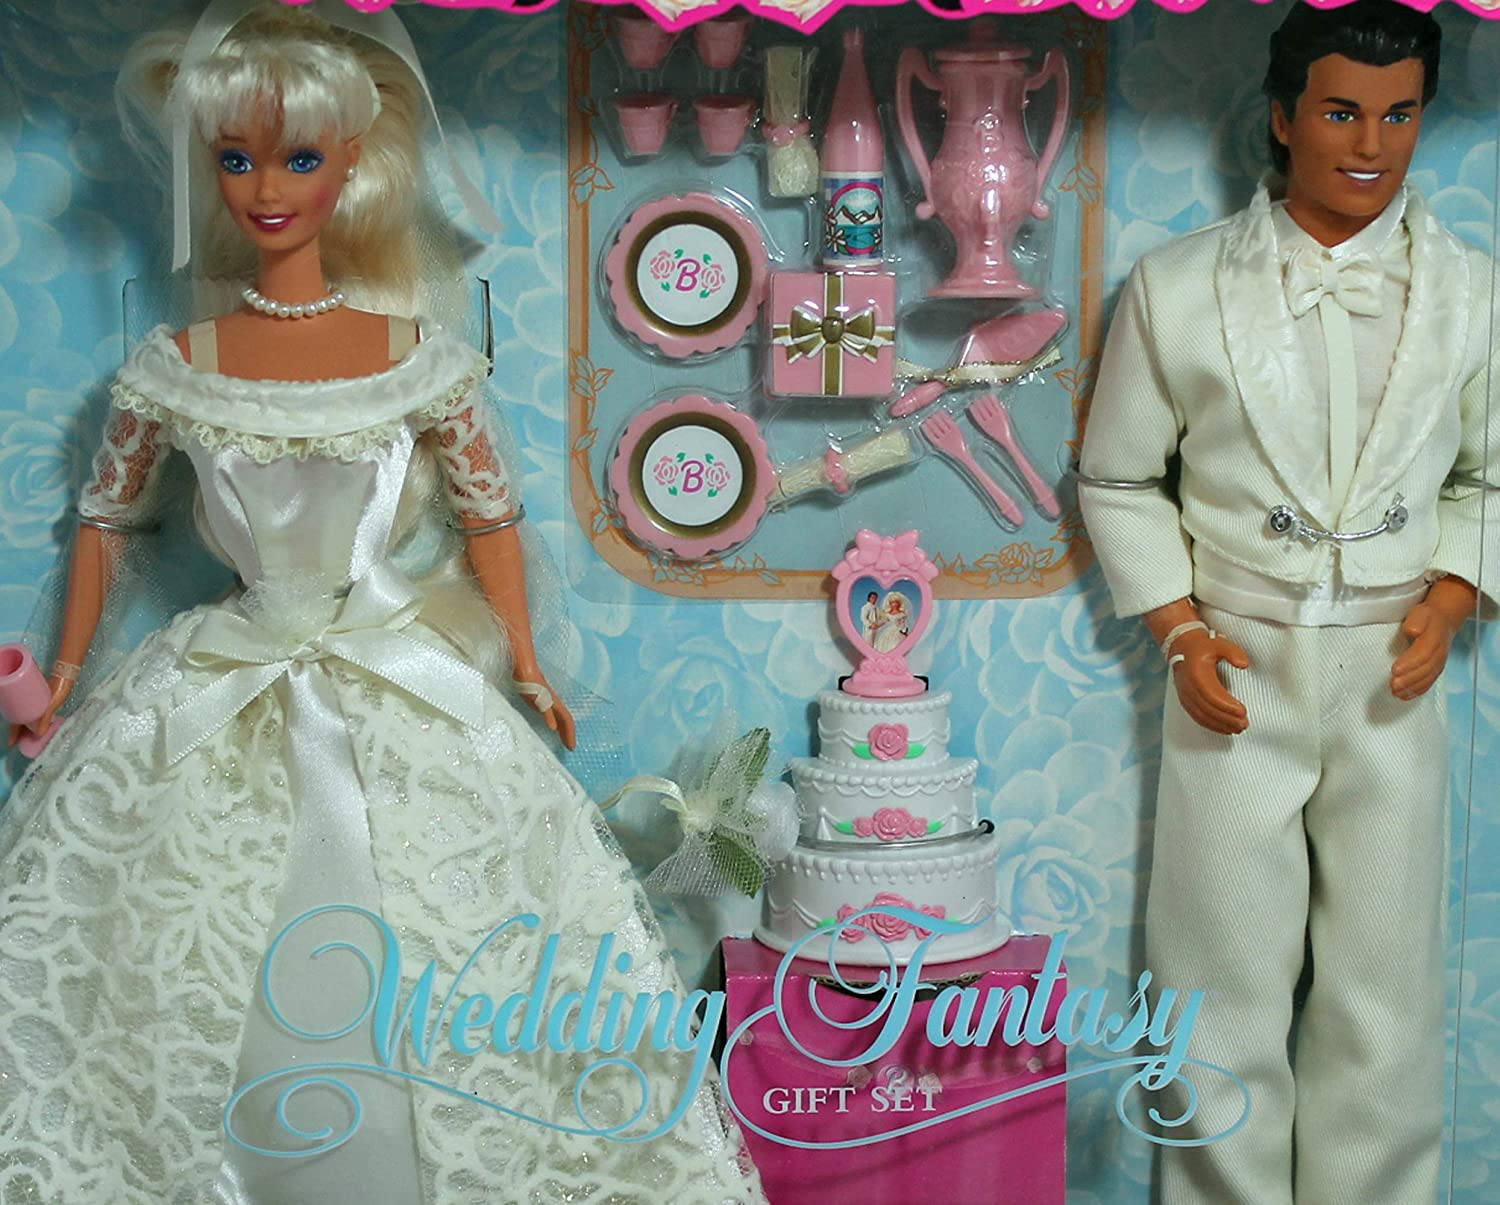 Amazon.es: Barbie and Ken Wedding Fantasy Gift Set Special Edition ...